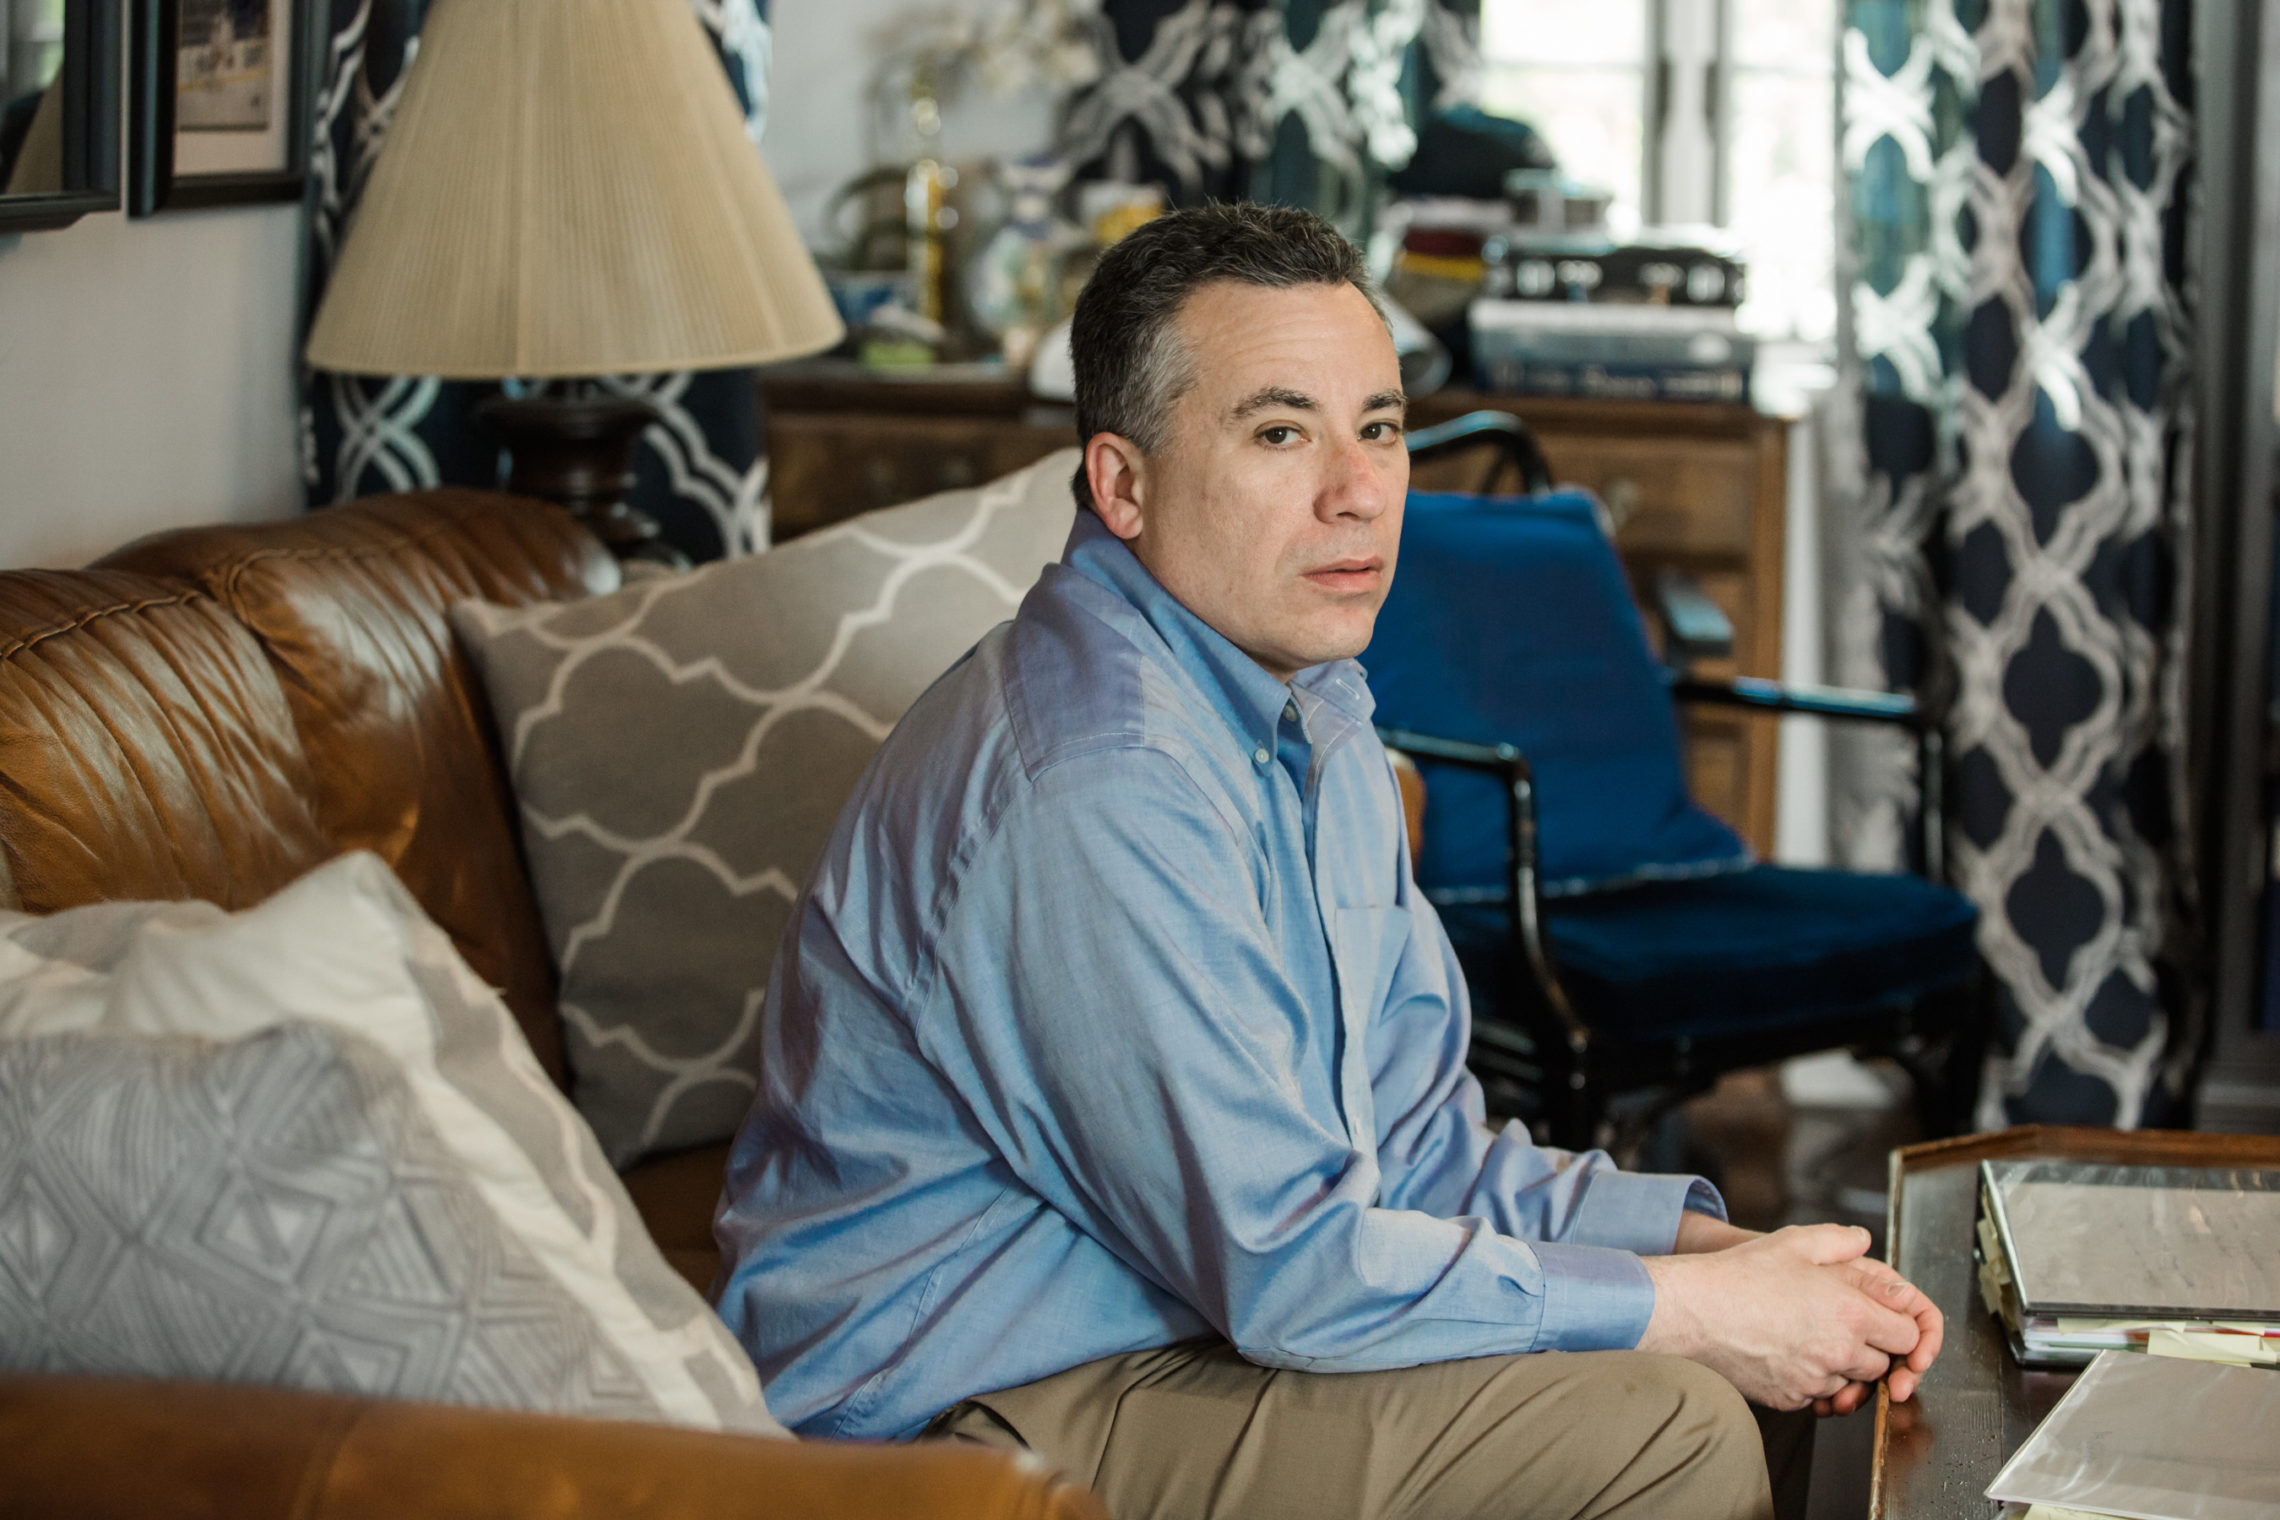 """As bad as NYU is, Aetna is equally culpable because Aetna's job was to be the checks and balances and to be my advocate,"" said Michael Frank, seen at his home in Port Chester, N.Y. CREDIT: ANNIE TRITT/PROPUBLICA"